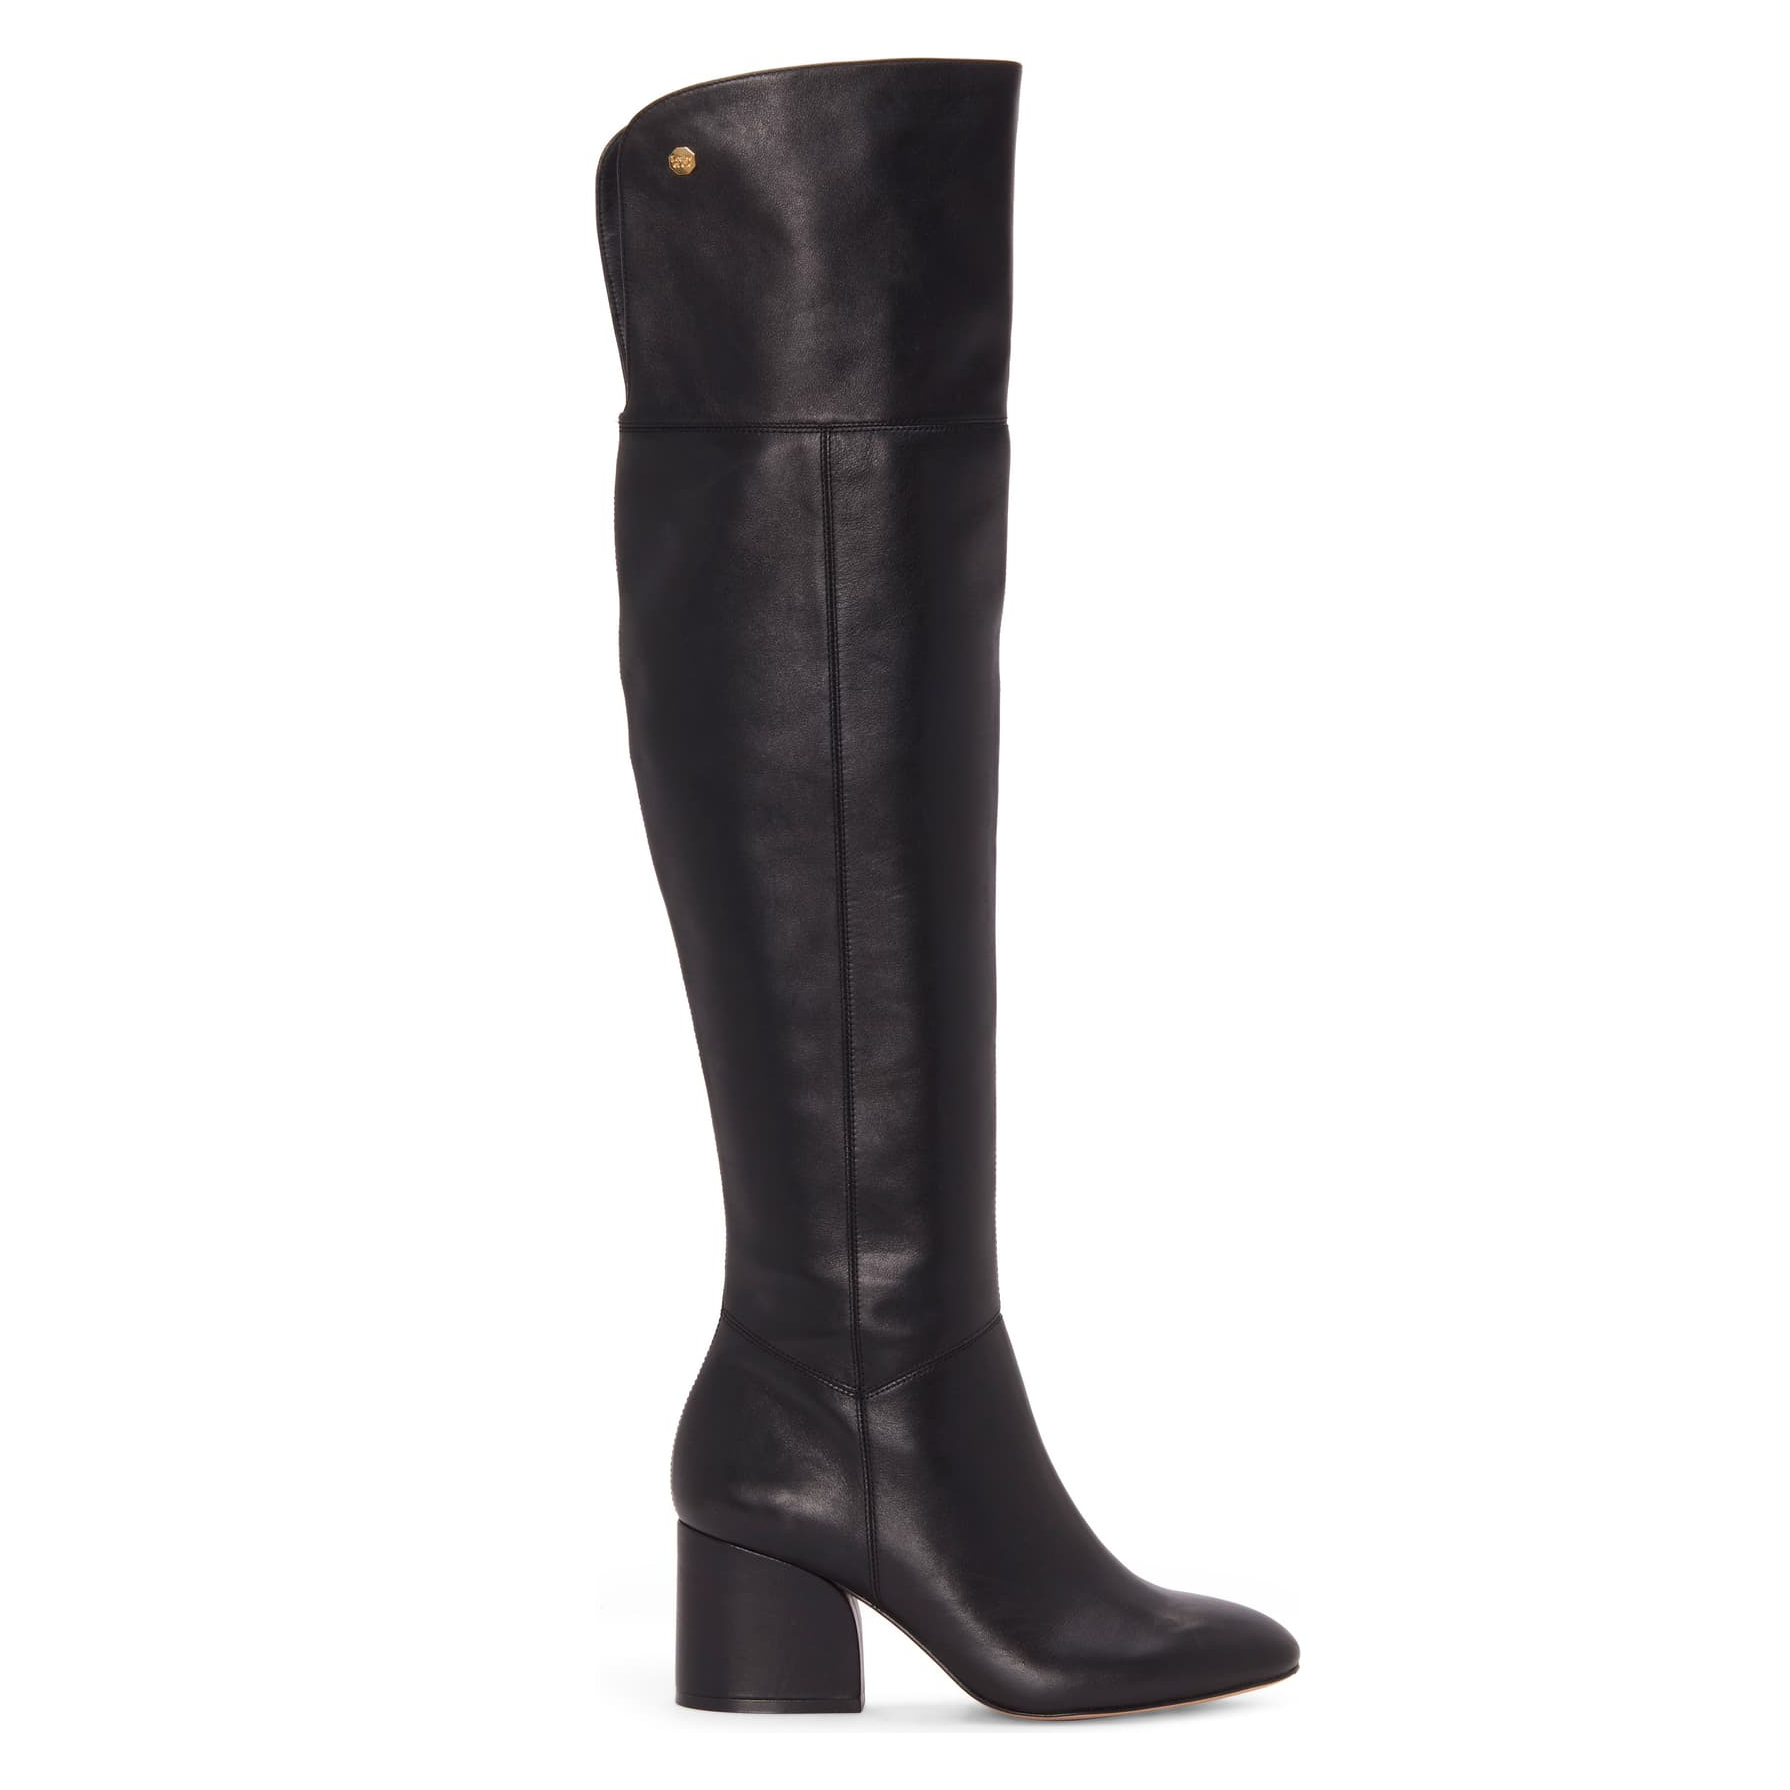 Louise et Cie Vayna Over the Knee Boot